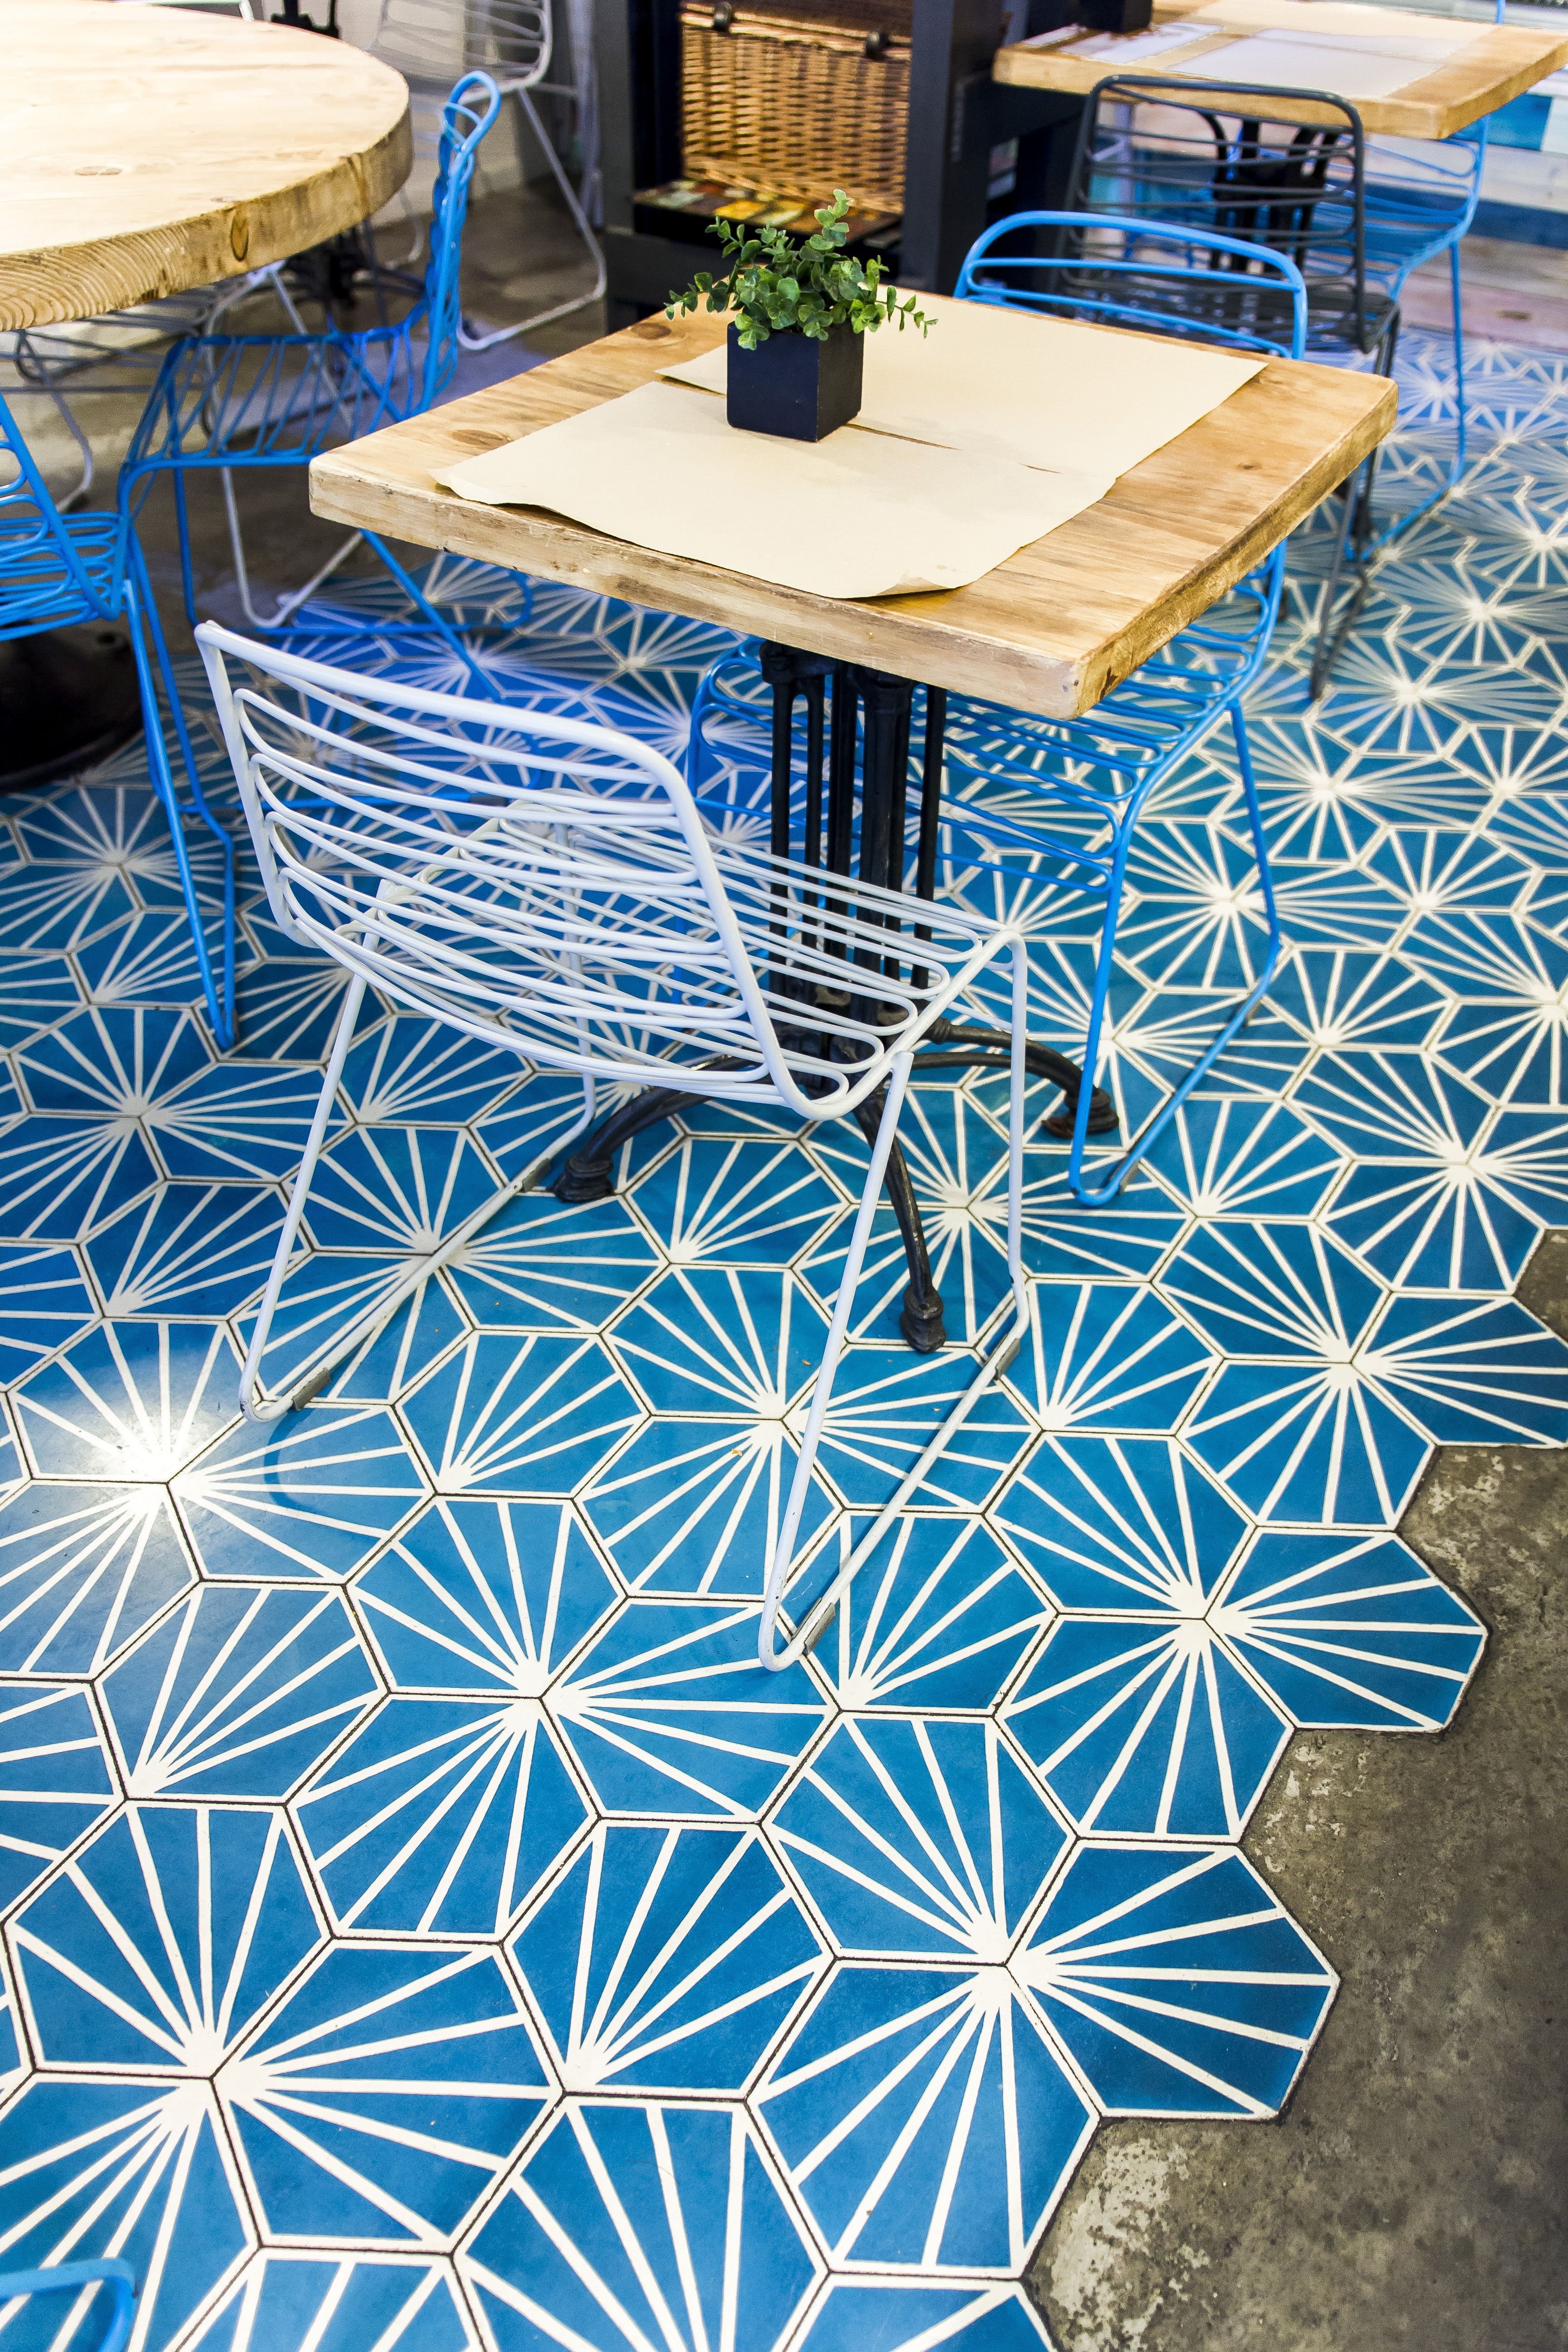 Blue and white hexagonal cement tile with geometric